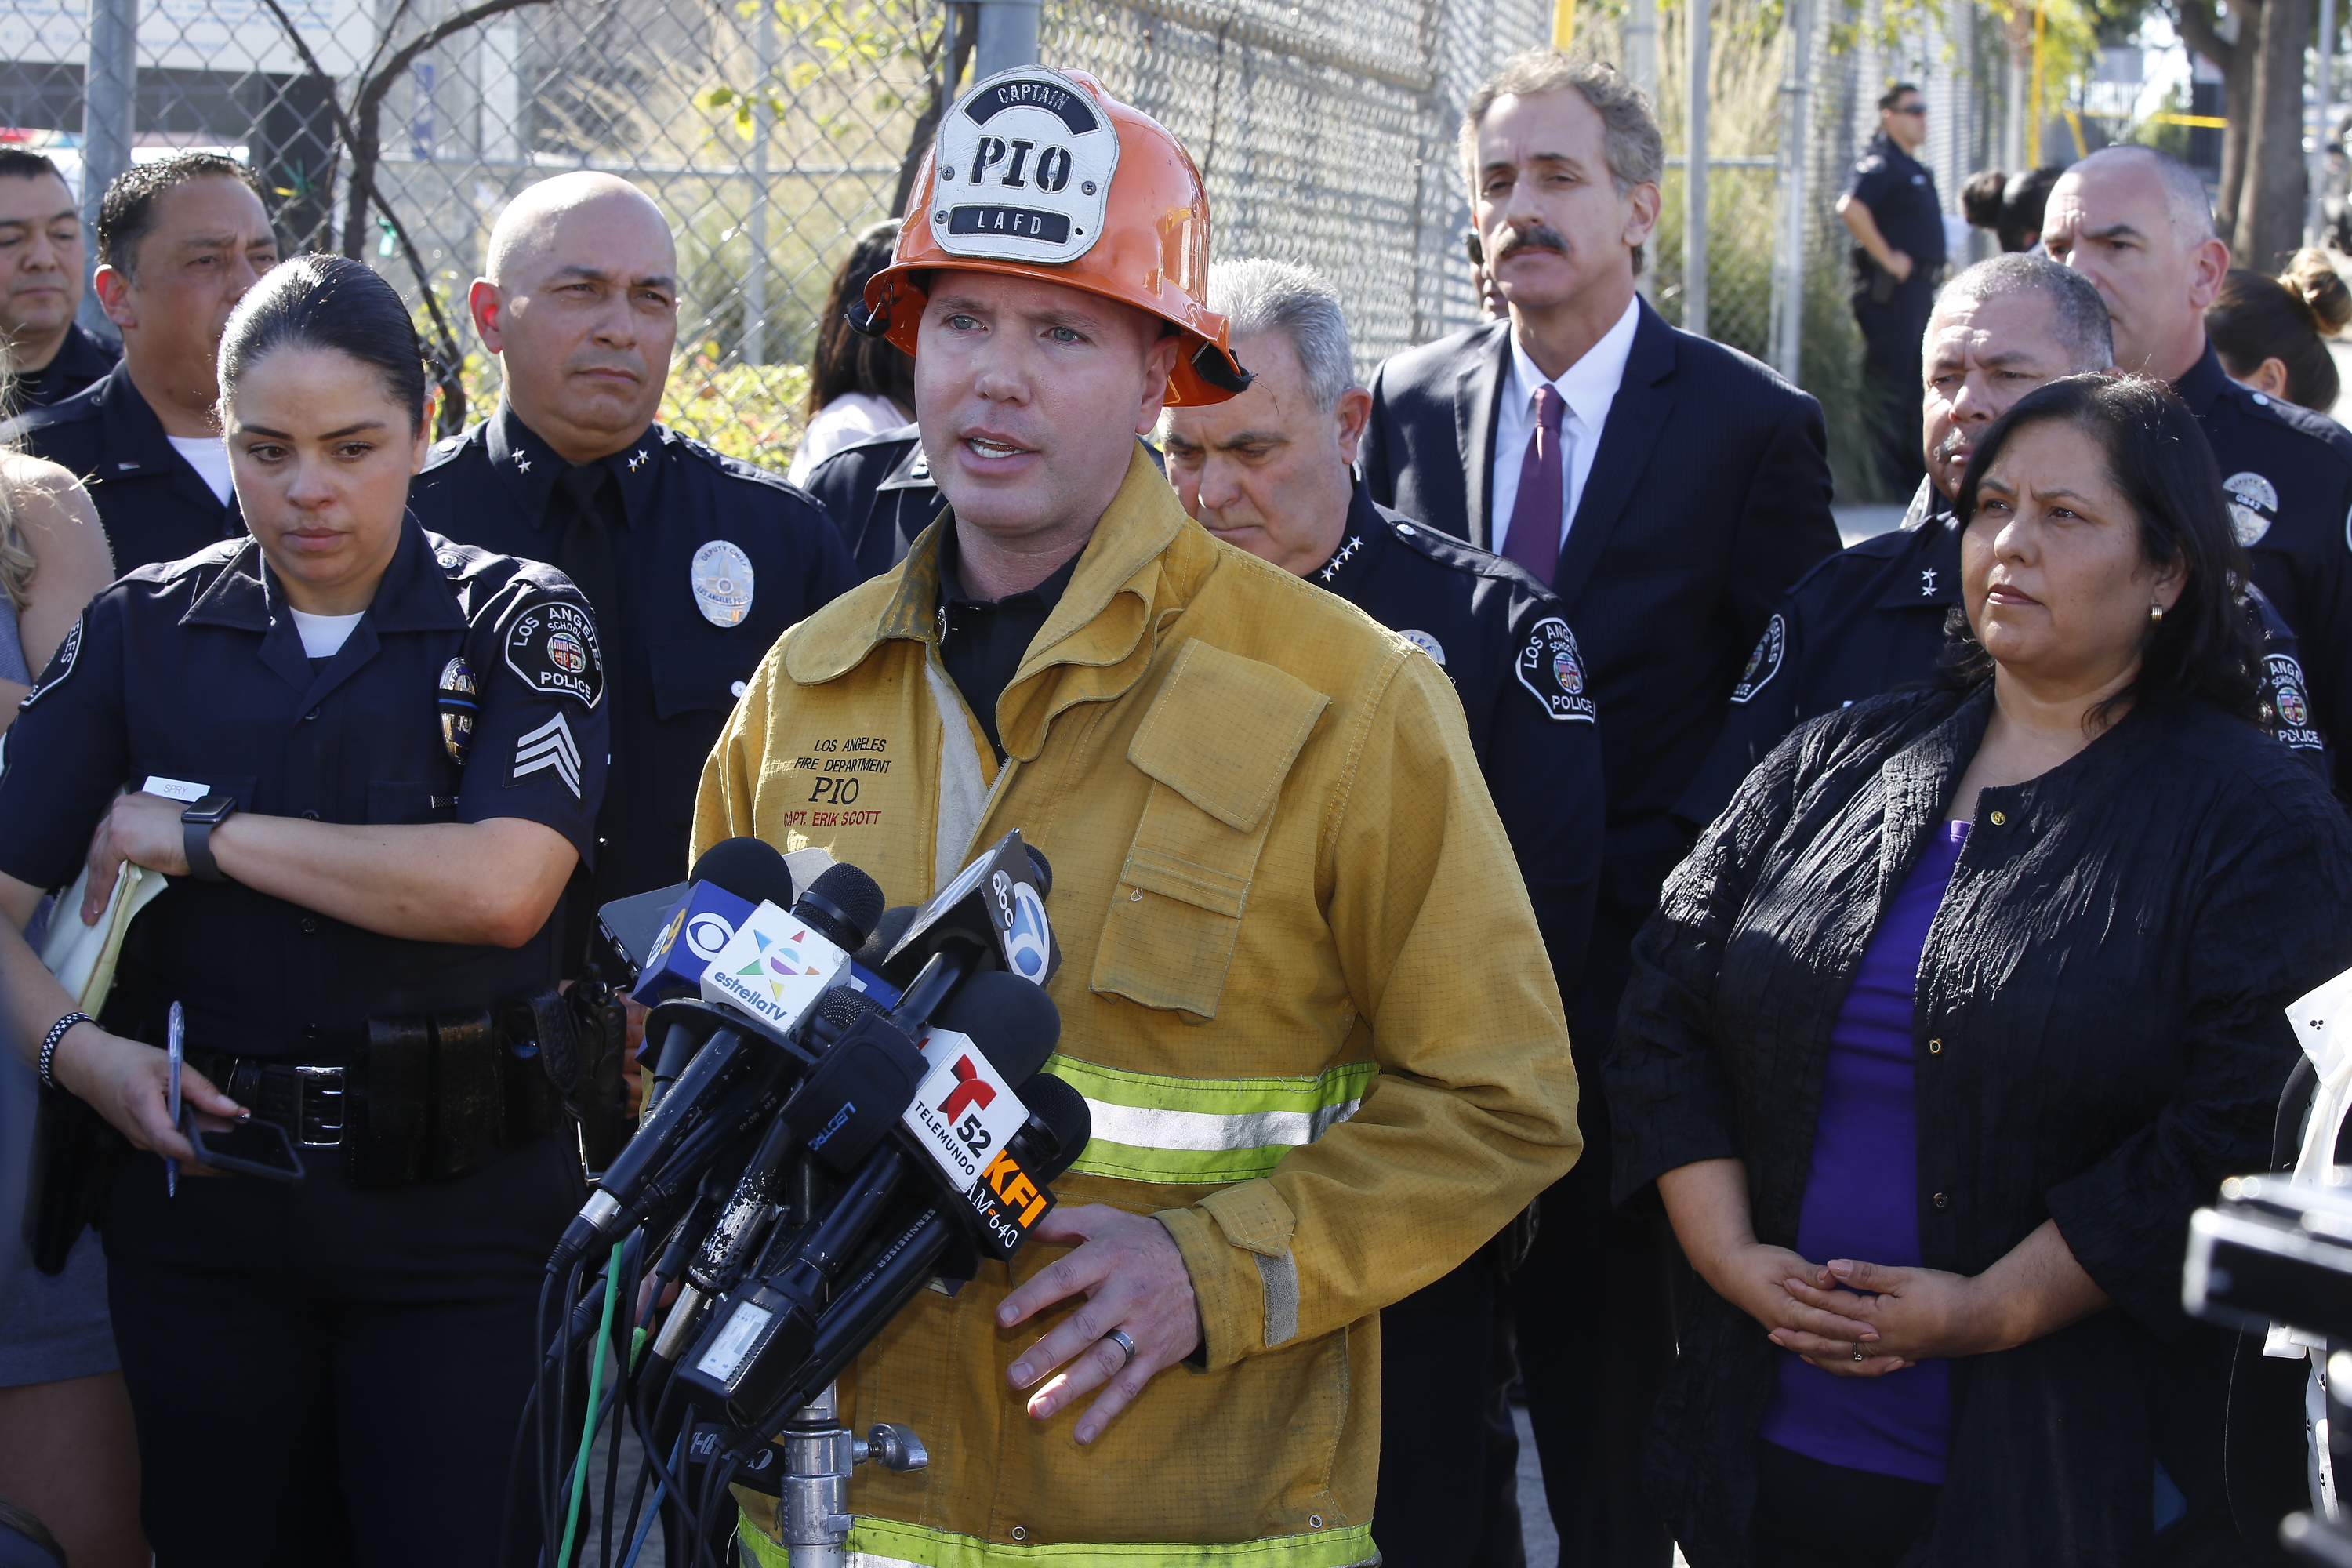 Los Angeles Fire department spokesman Erik Scott, center briefs the media outside the Belmont High School in Los Angeles Thursday, Feb. 1, 2018. Two students were shot and wounded, one critically, inside a Los Angeles middle school classroom Thursday morning and police arrested a female student believed to be 12 years old, authorities said. At right, Mónica García, Los Angeles Uinfied School District Board Member. (AP Photo/Damian Dovarganes)